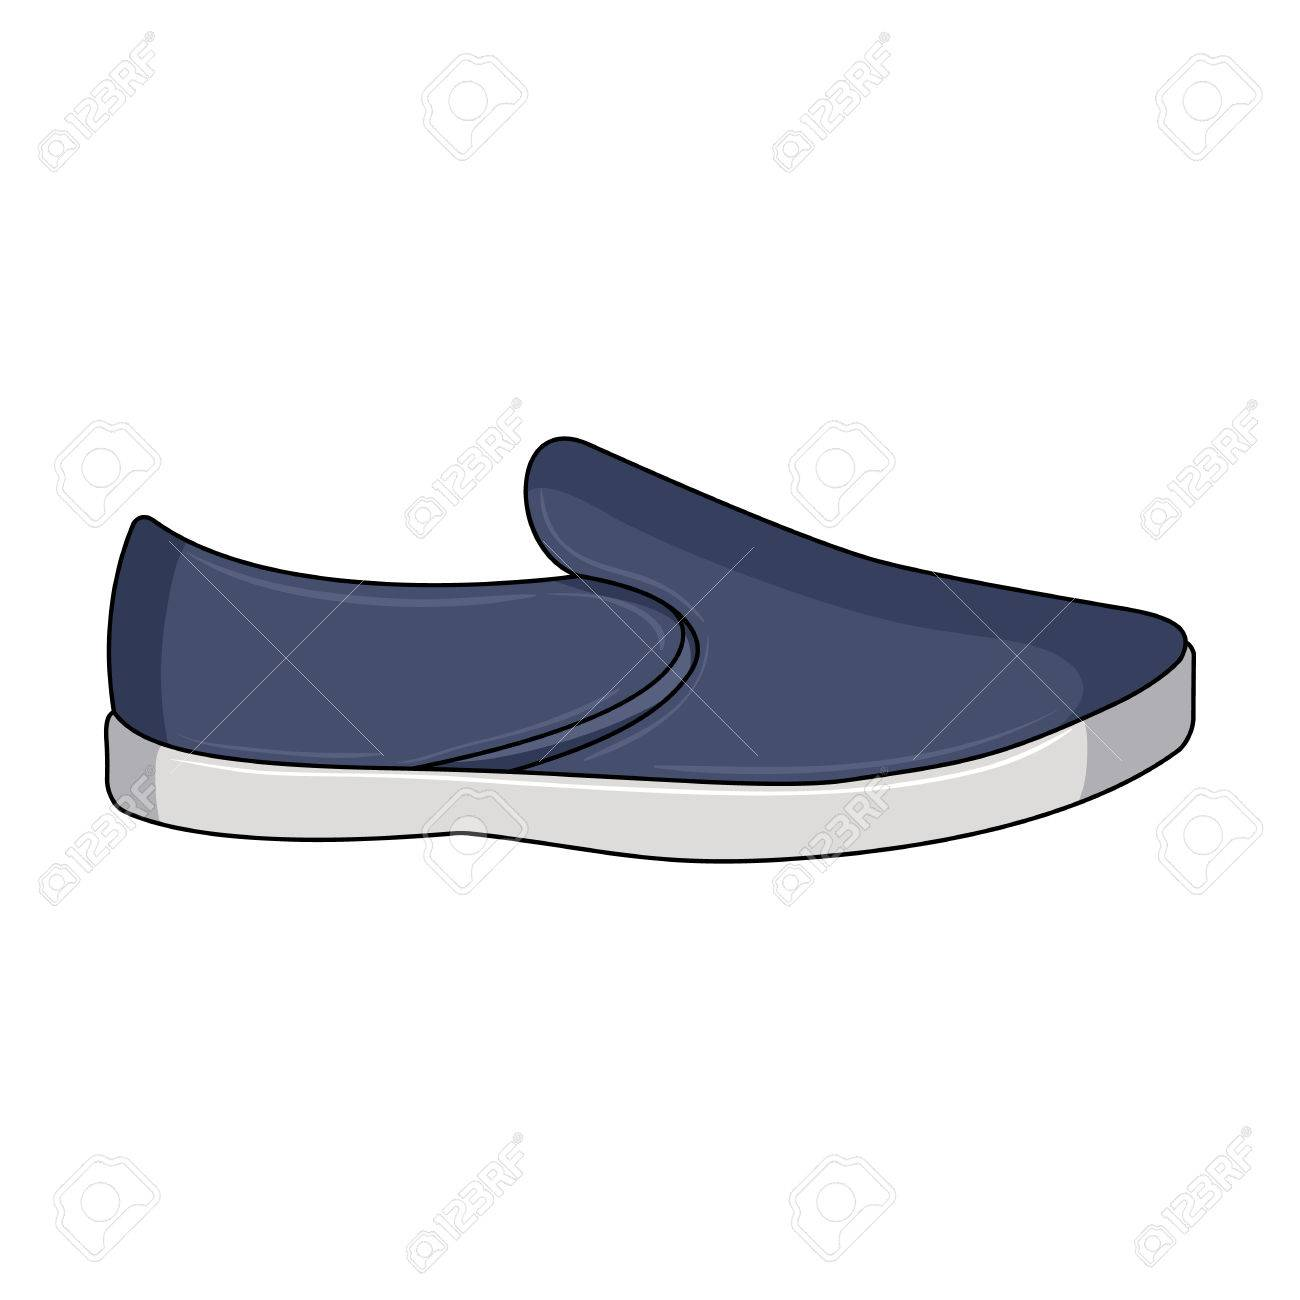 8a7ccb6fee Blue men summer espadrilles . Summer comfortable shoes on the..